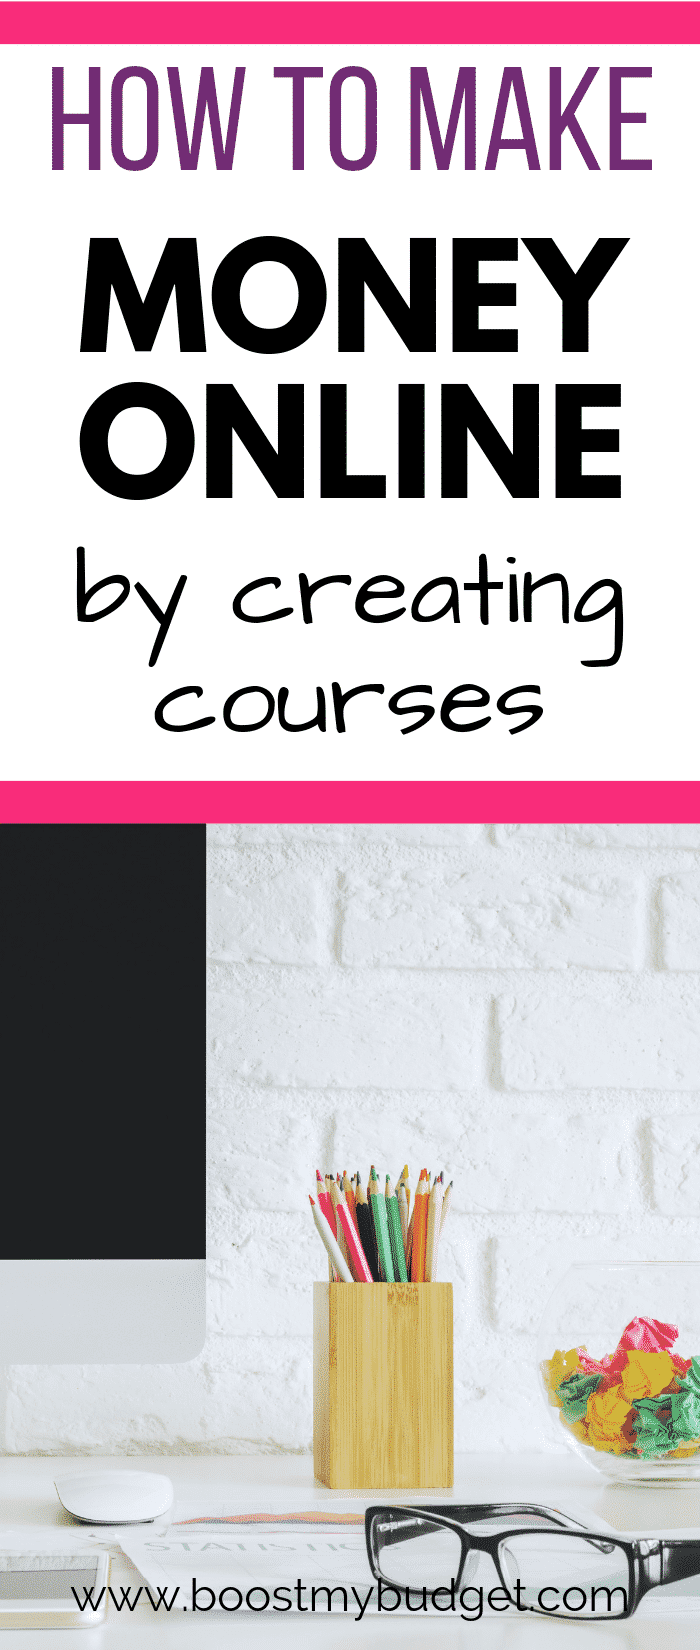 Looking for ways to make money from home? How about creating and selling courses online. It's a great way to make passive income and supplement your income.